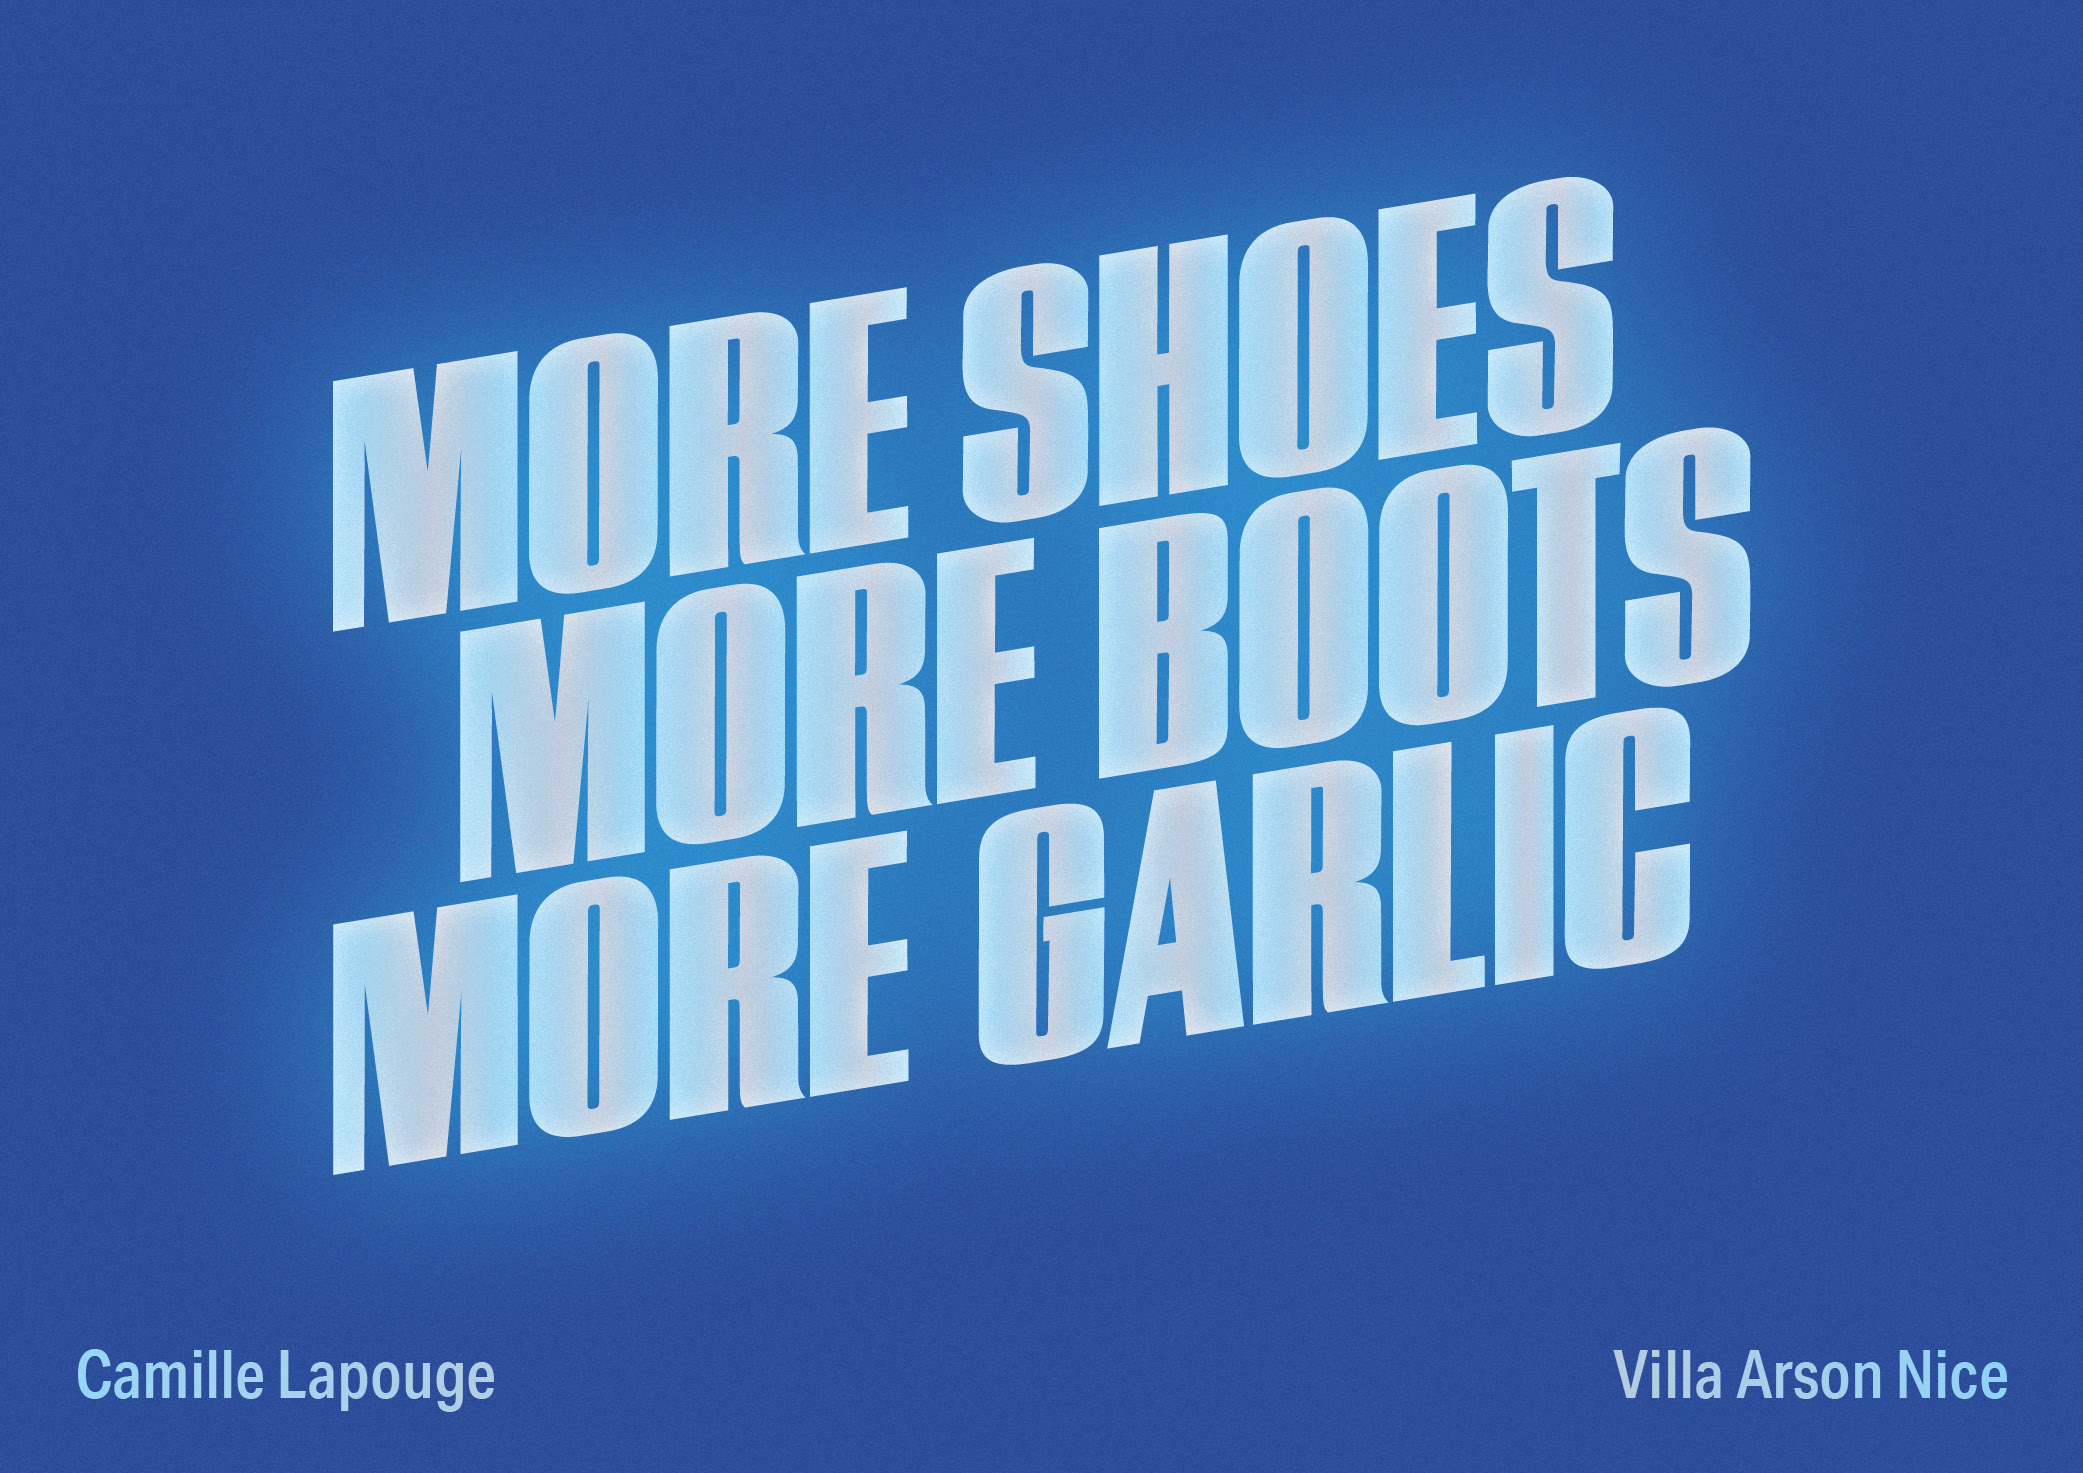 more shoes more boots more garlic | Camille Lapouge